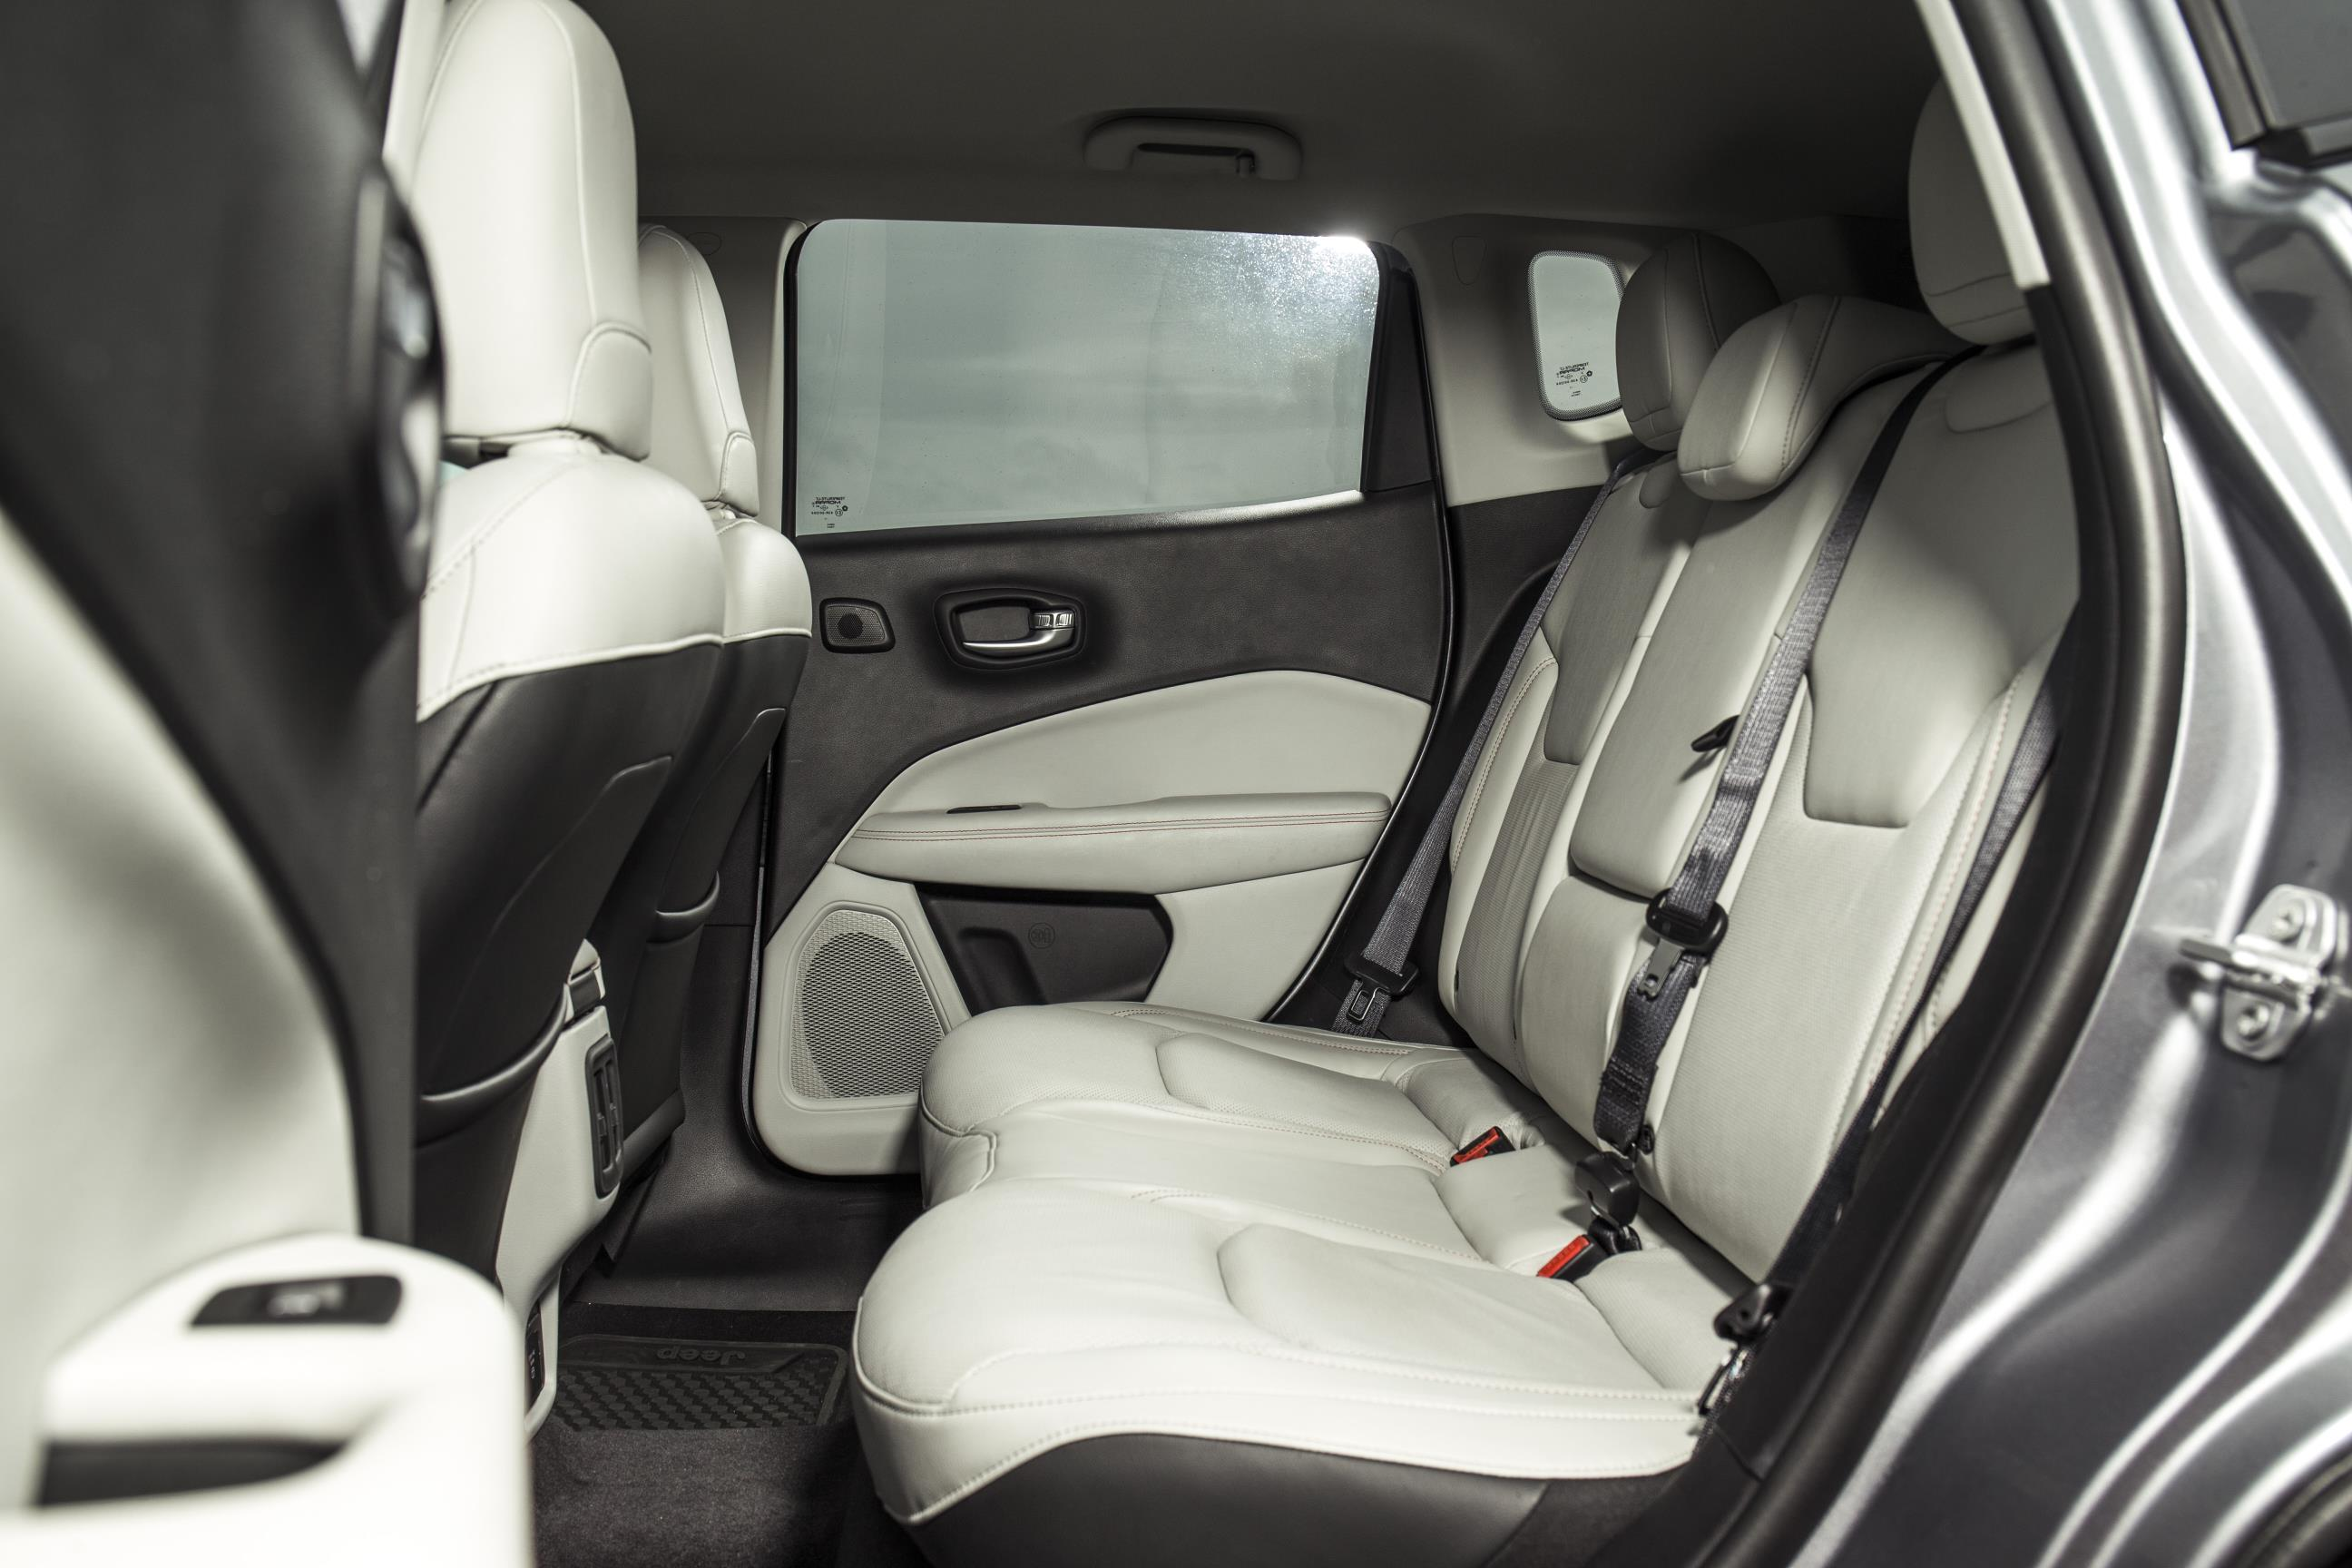 Rear interior of the Jeep Compass